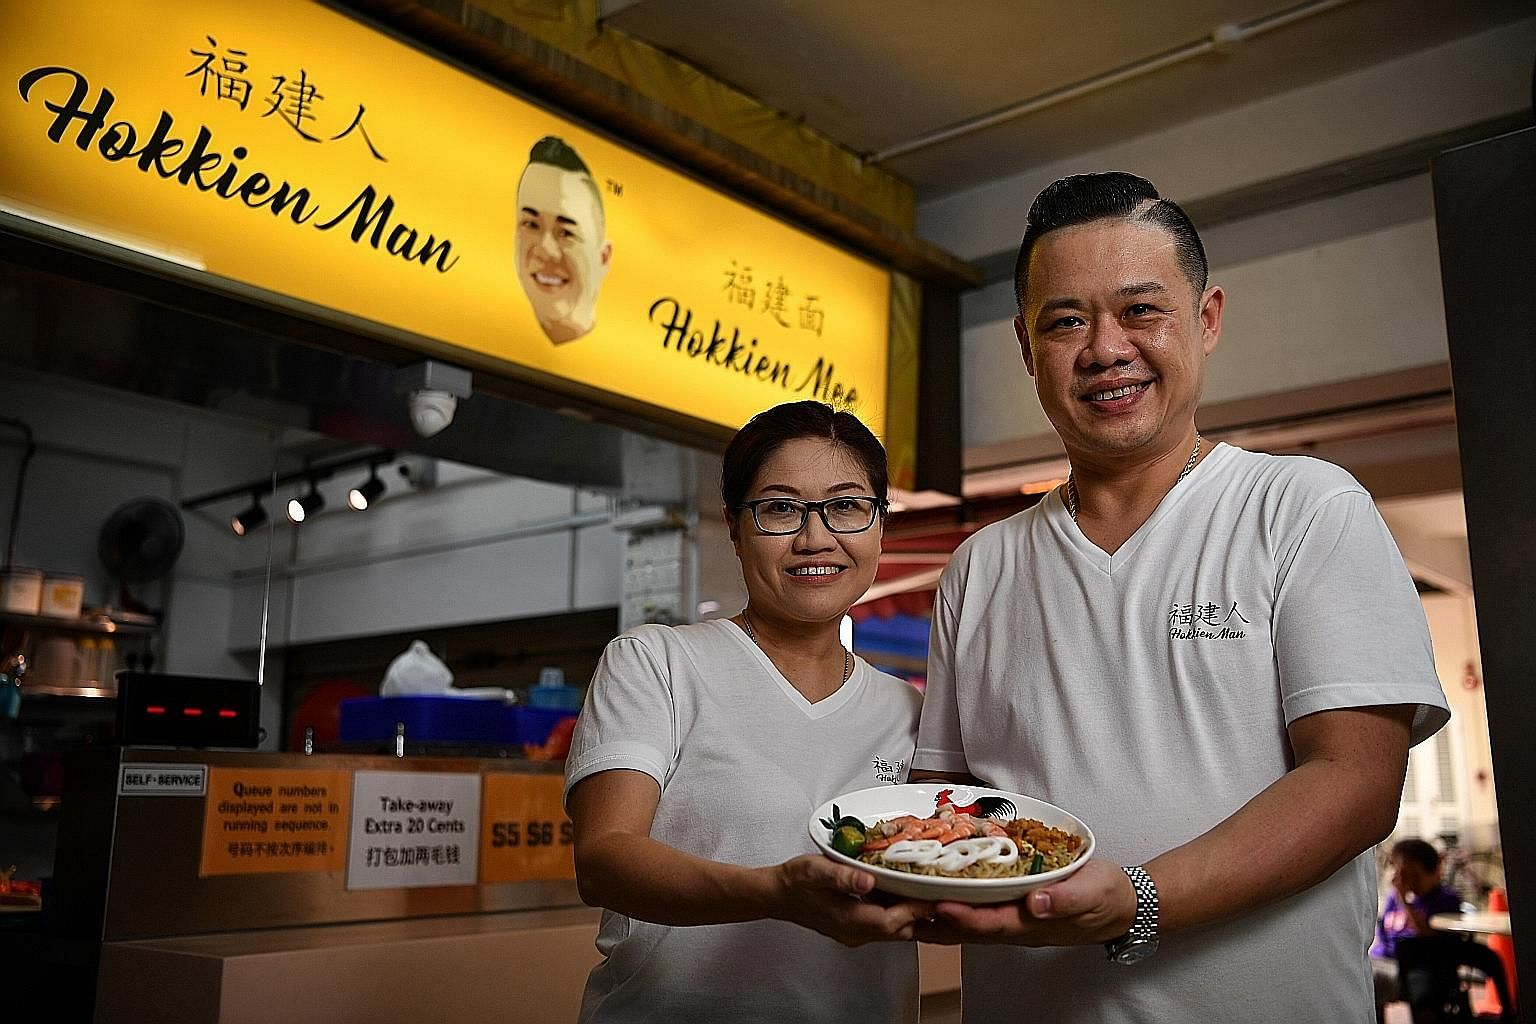 Running the Hokkien mee stall is hard work for Xavier Neo and his wife Alice Lai, but they are determined to press on.